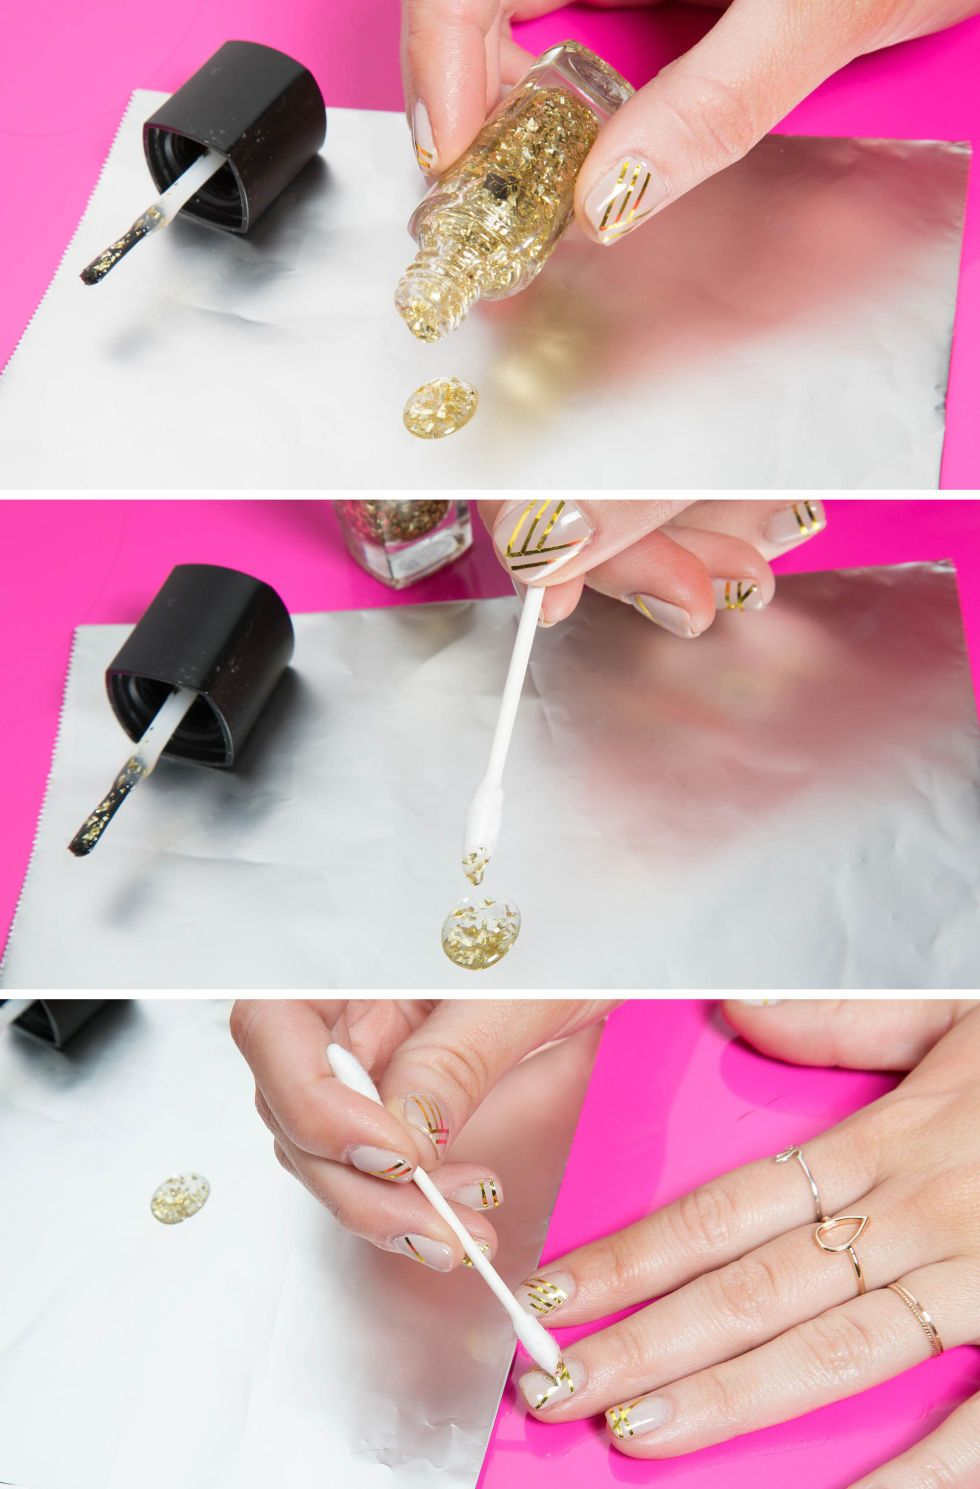 Use a cotton swab as a tool for applying glitter nail polish ...